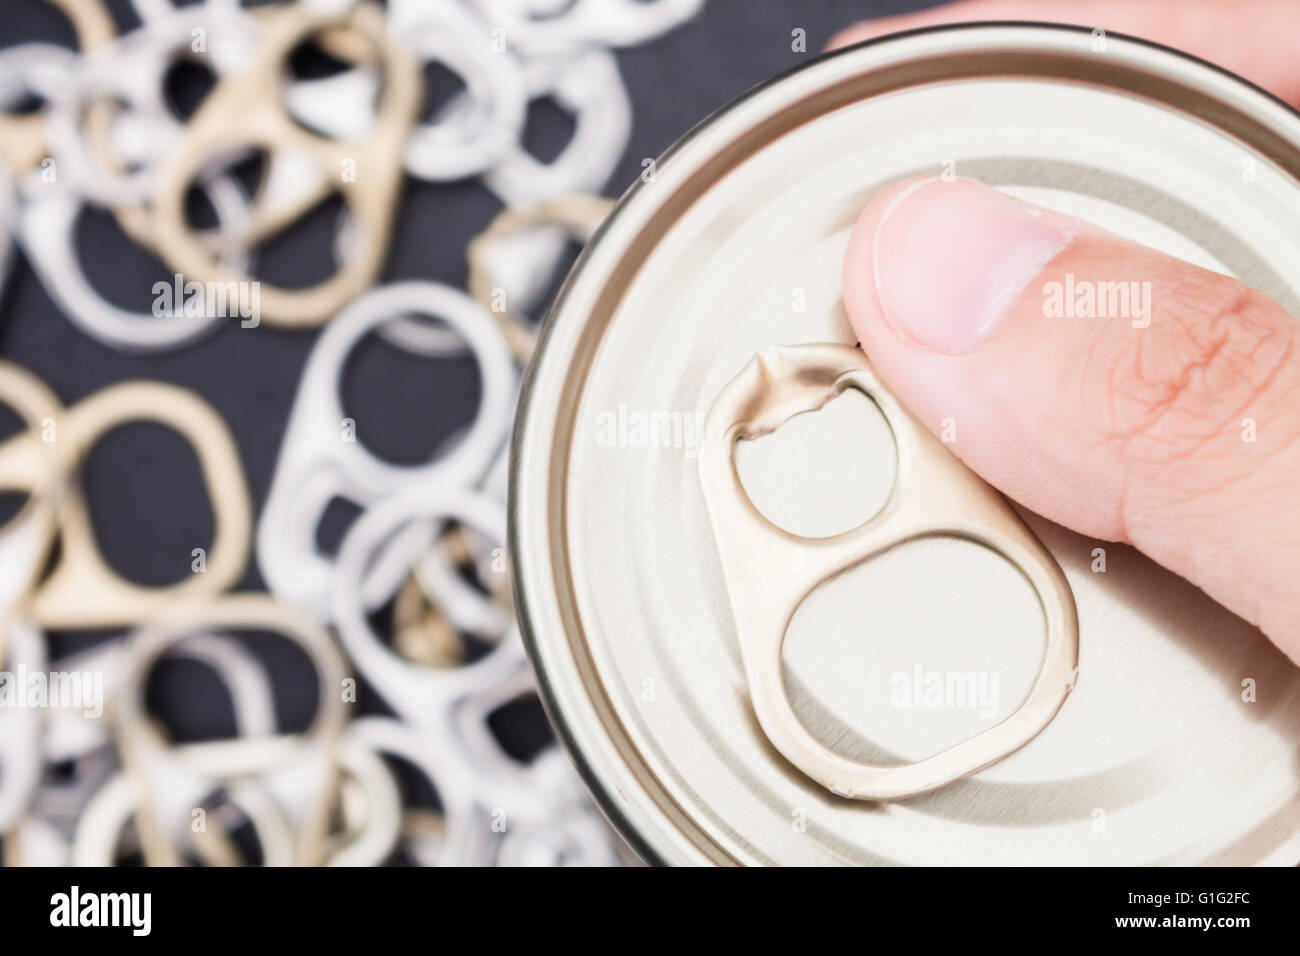 Woman hand holding ring pull cans opener on black metallic background - Stock Image